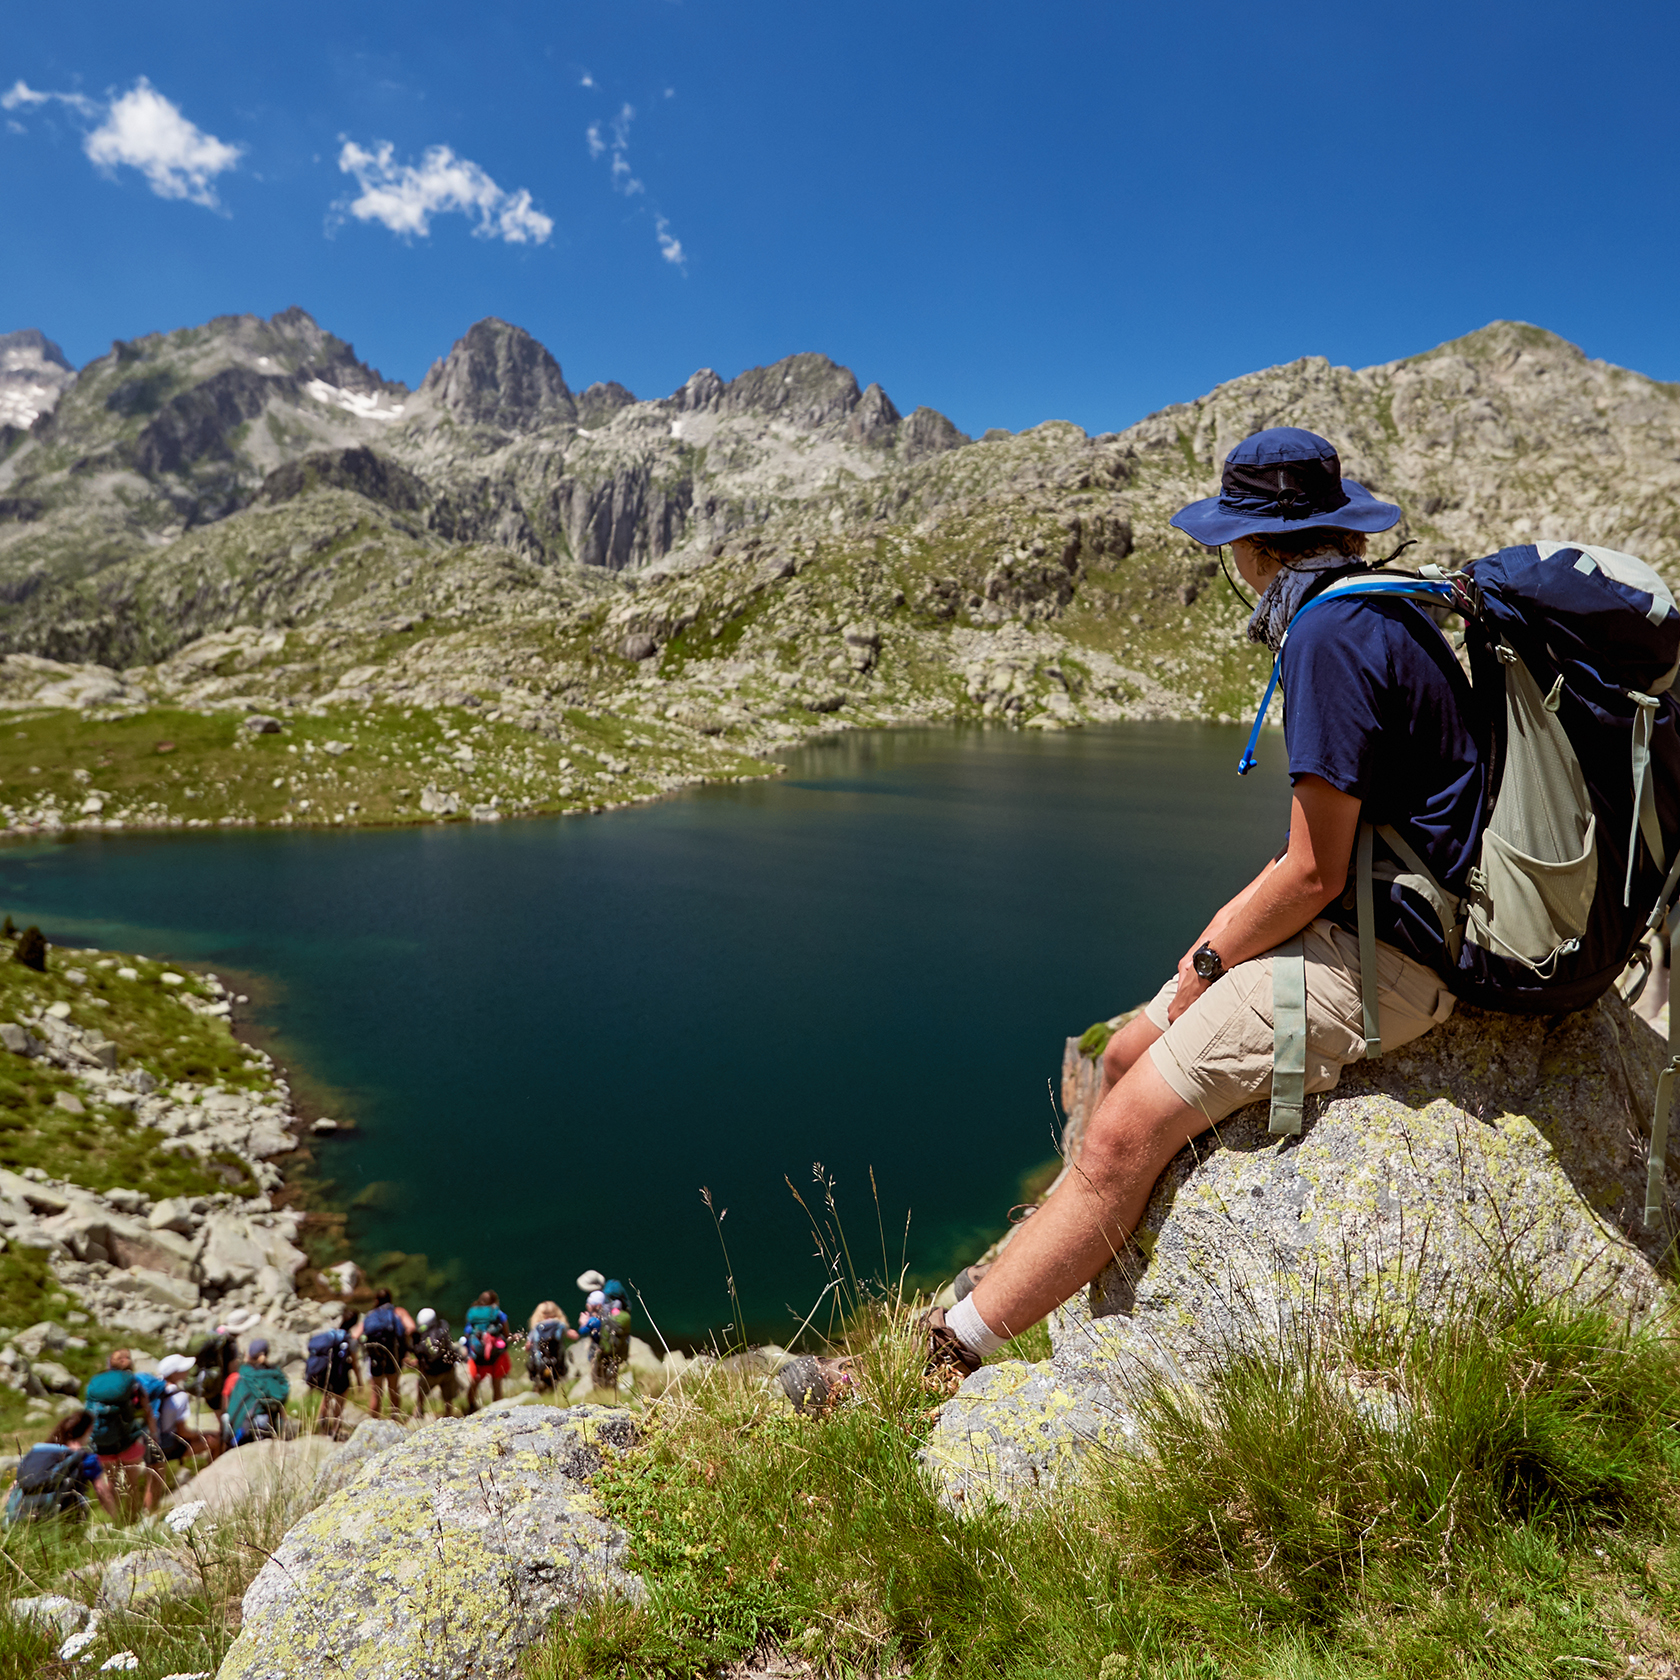 Backpacking on the Alps & Pyrenees trip